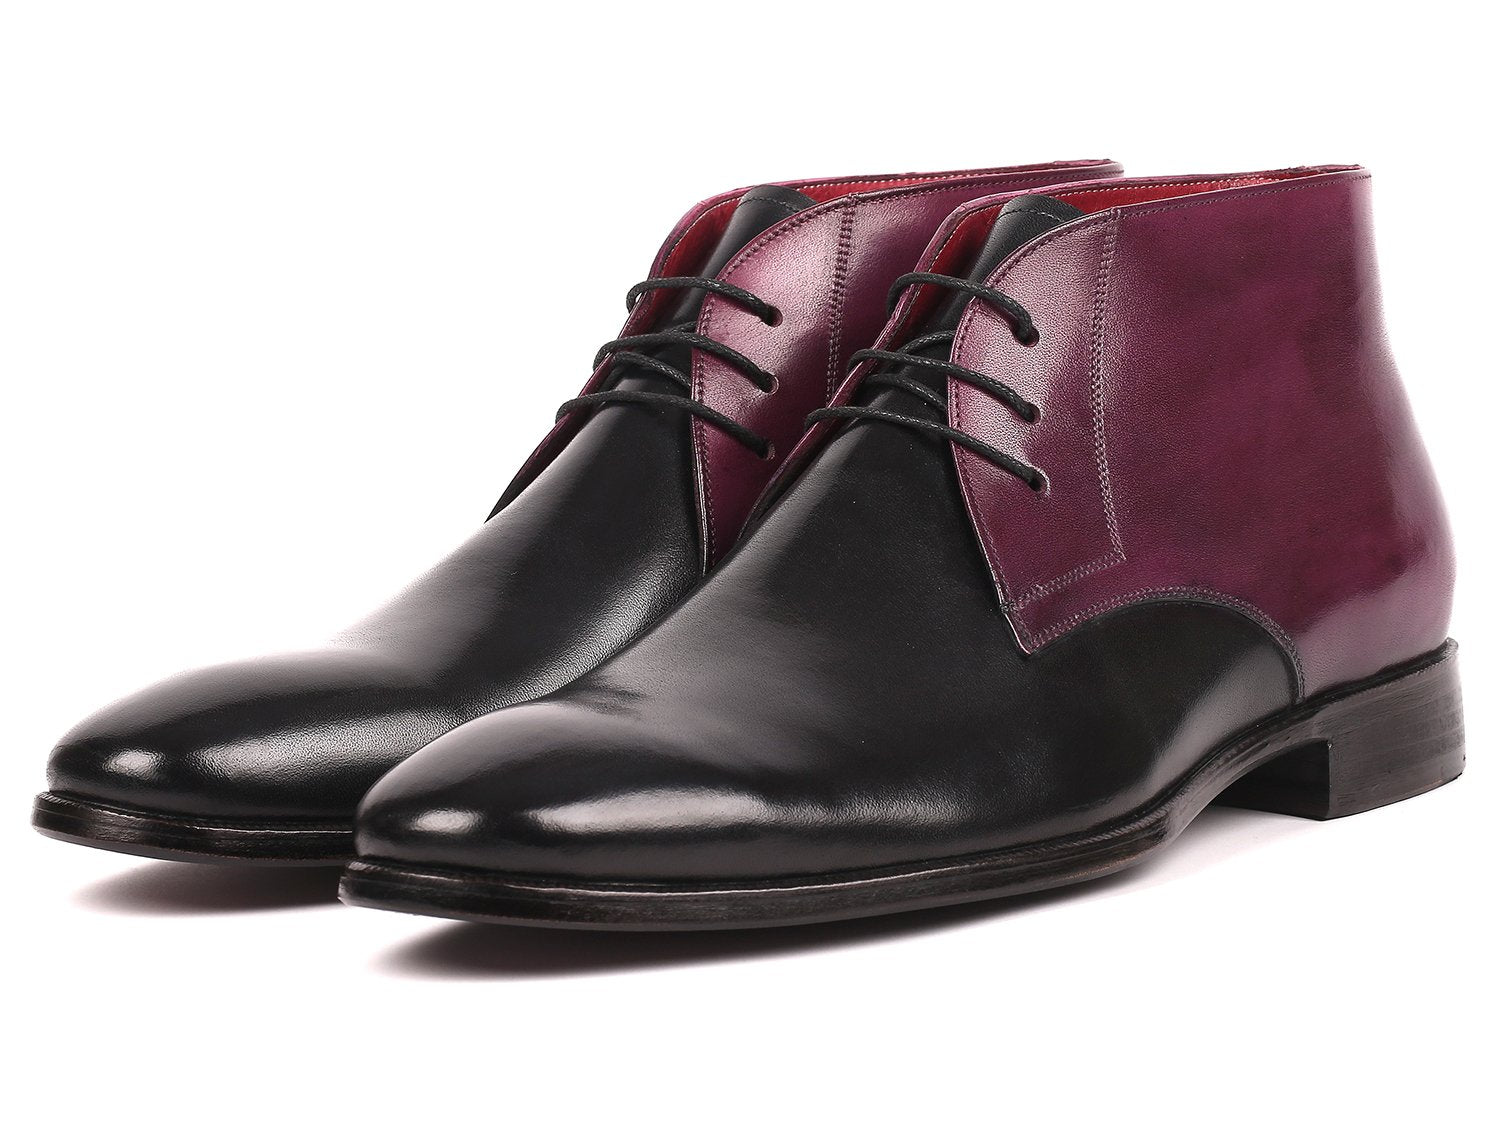 Paul Parkman Men's Chukka Boots Black & Purple (ID#CK68H1)